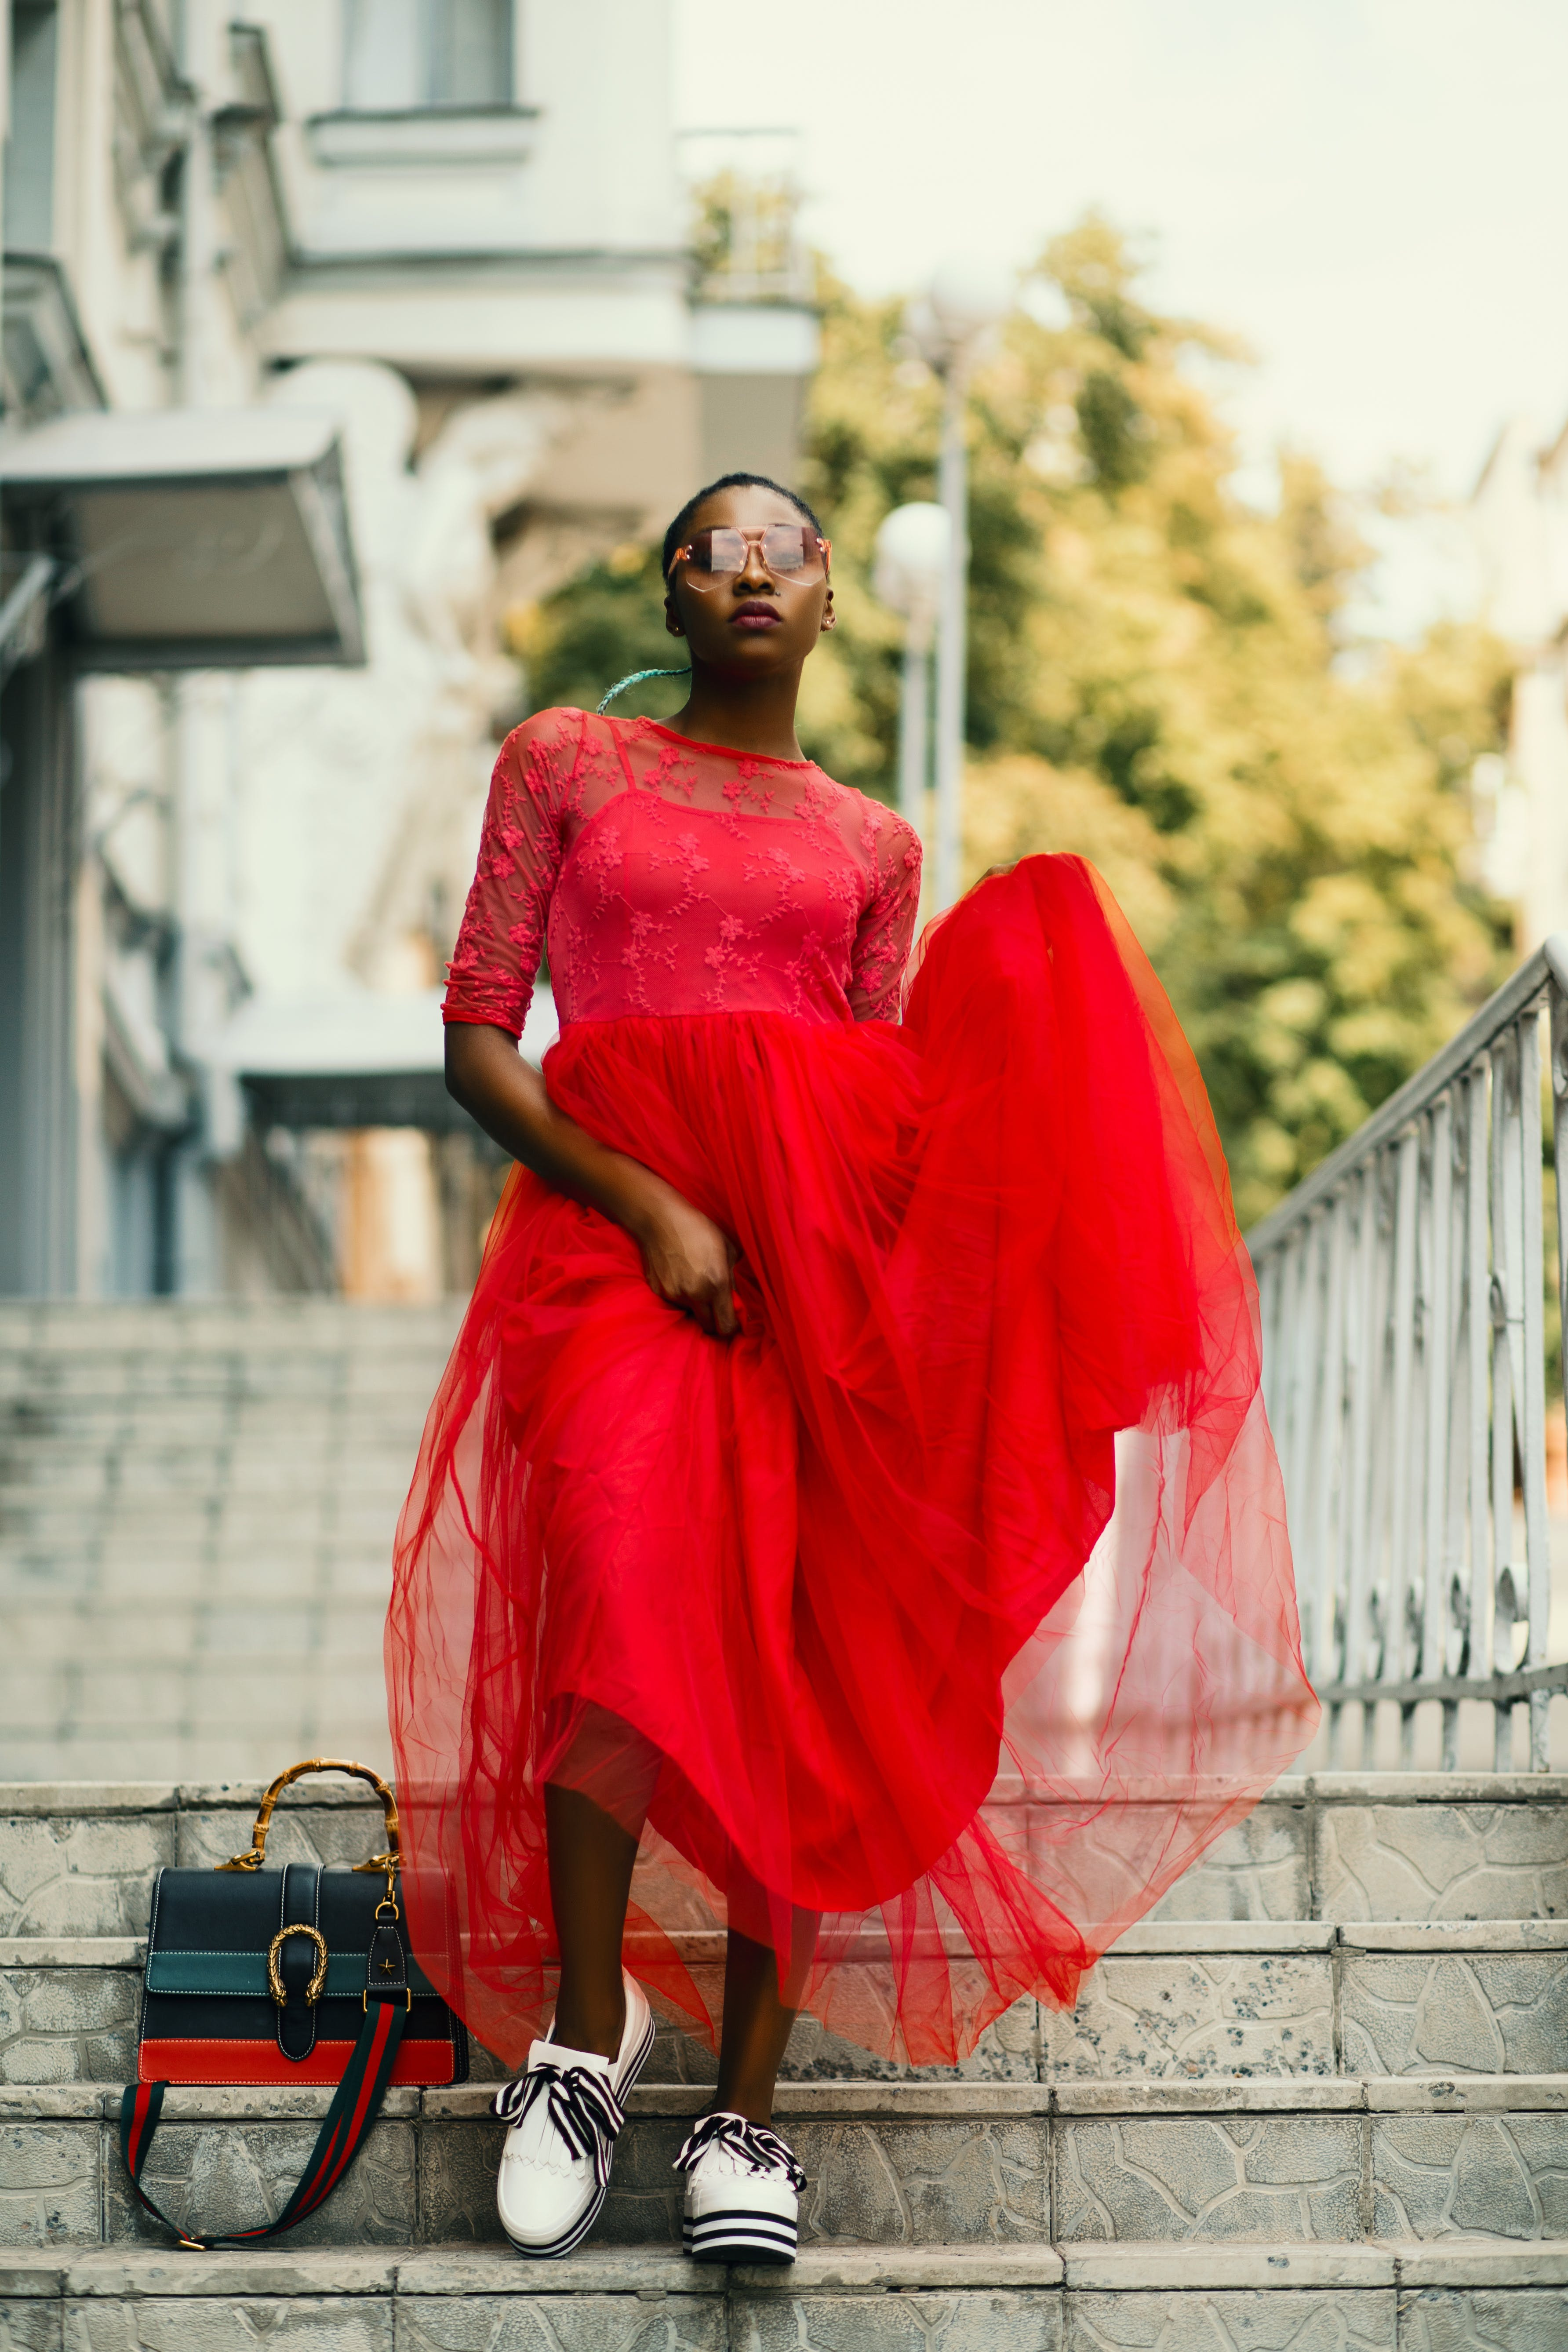 Woman Wearing Red Crew-neck Dress Walking on the Stairs Photography